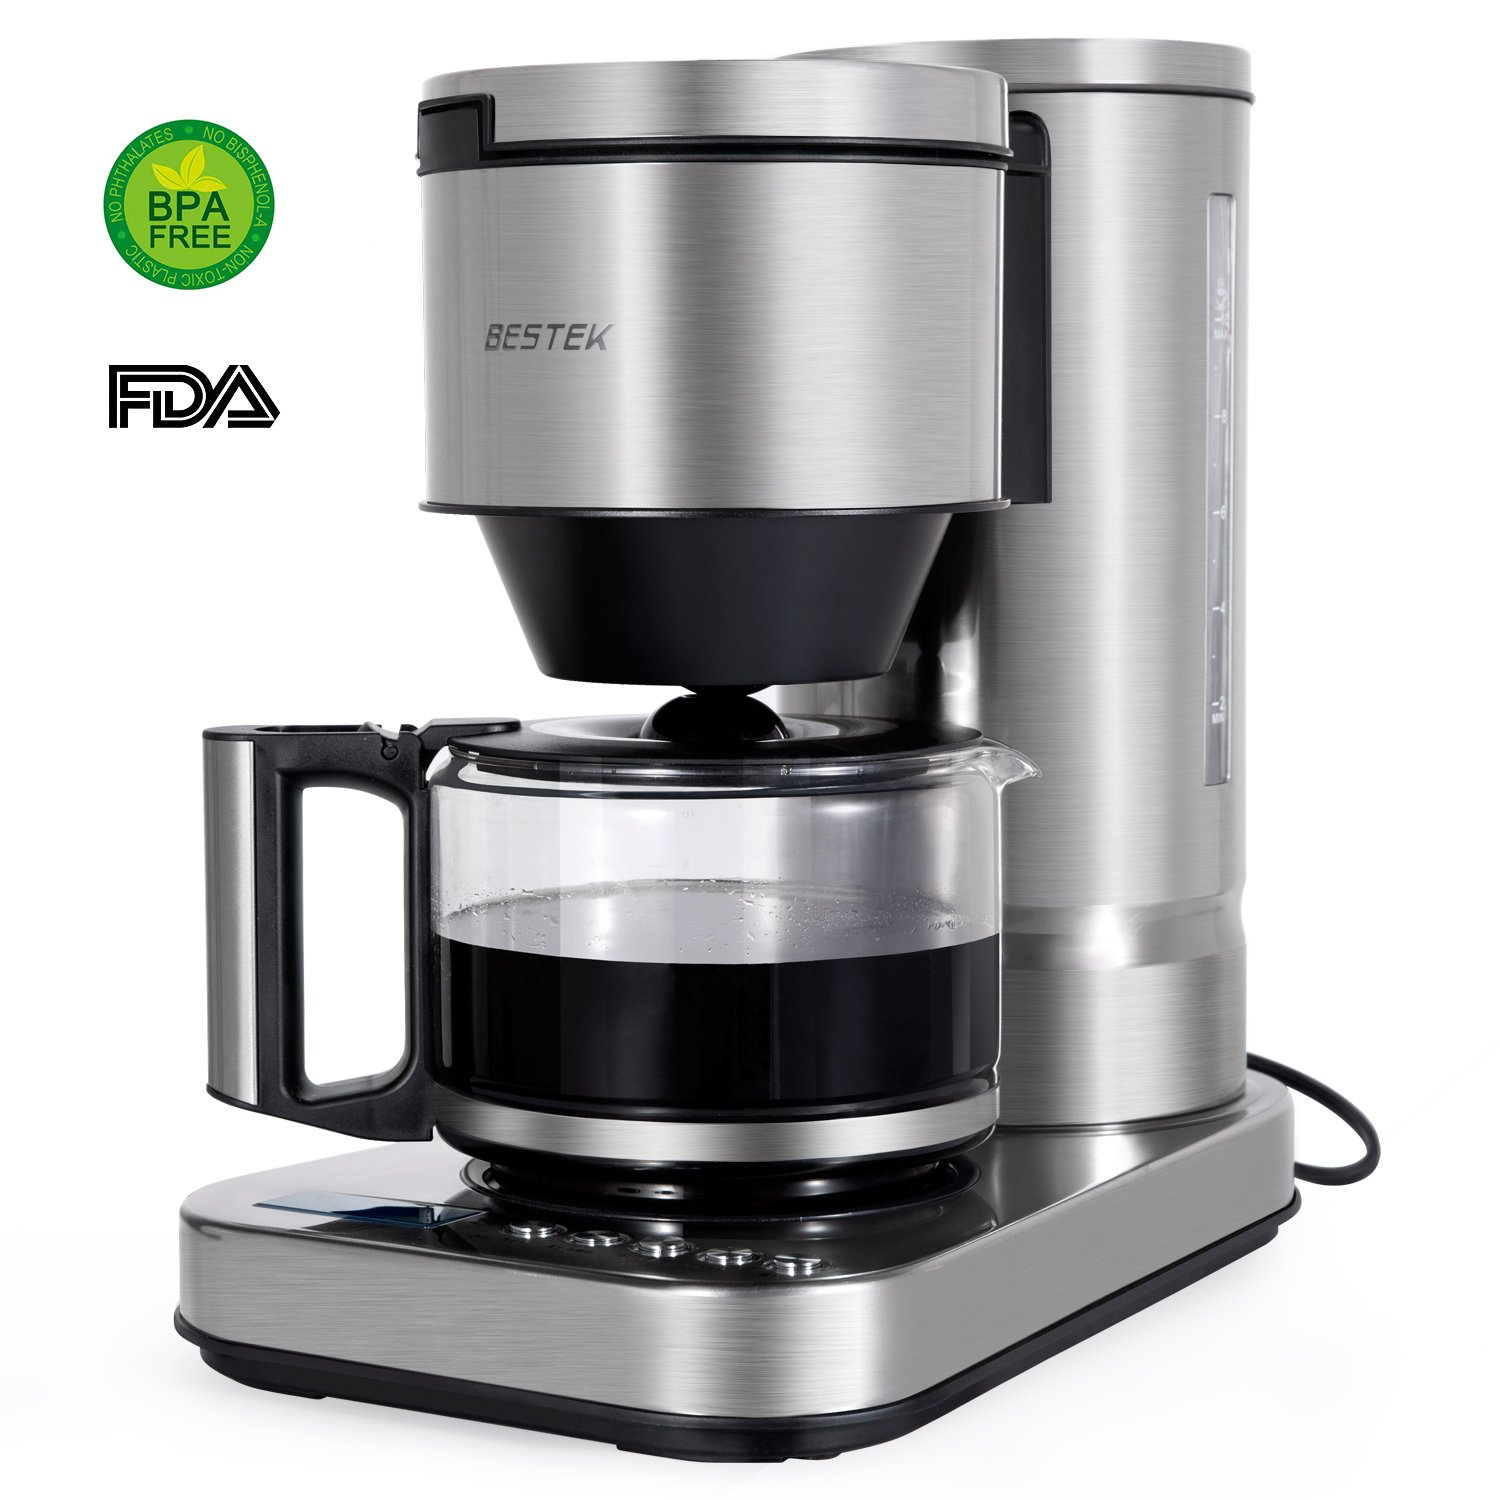 BESTEK 10 Cup Drip Coffee Maker in Stainless Steel, Programmable and Aroma Control, with Permanent Filter